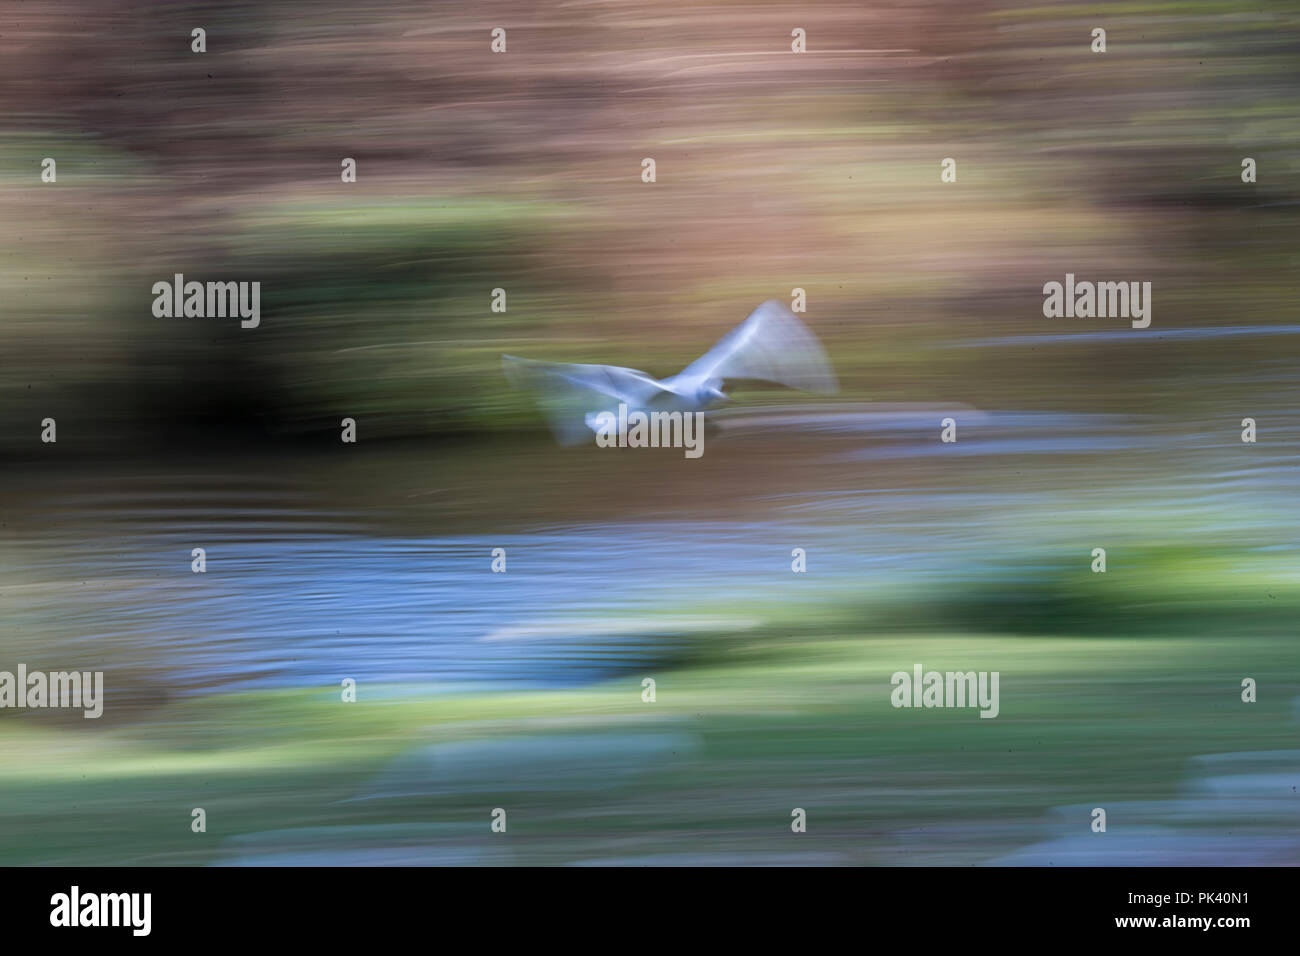 Black headed gull Larus ridibundus in flight with artistic motion blur - Stock Image